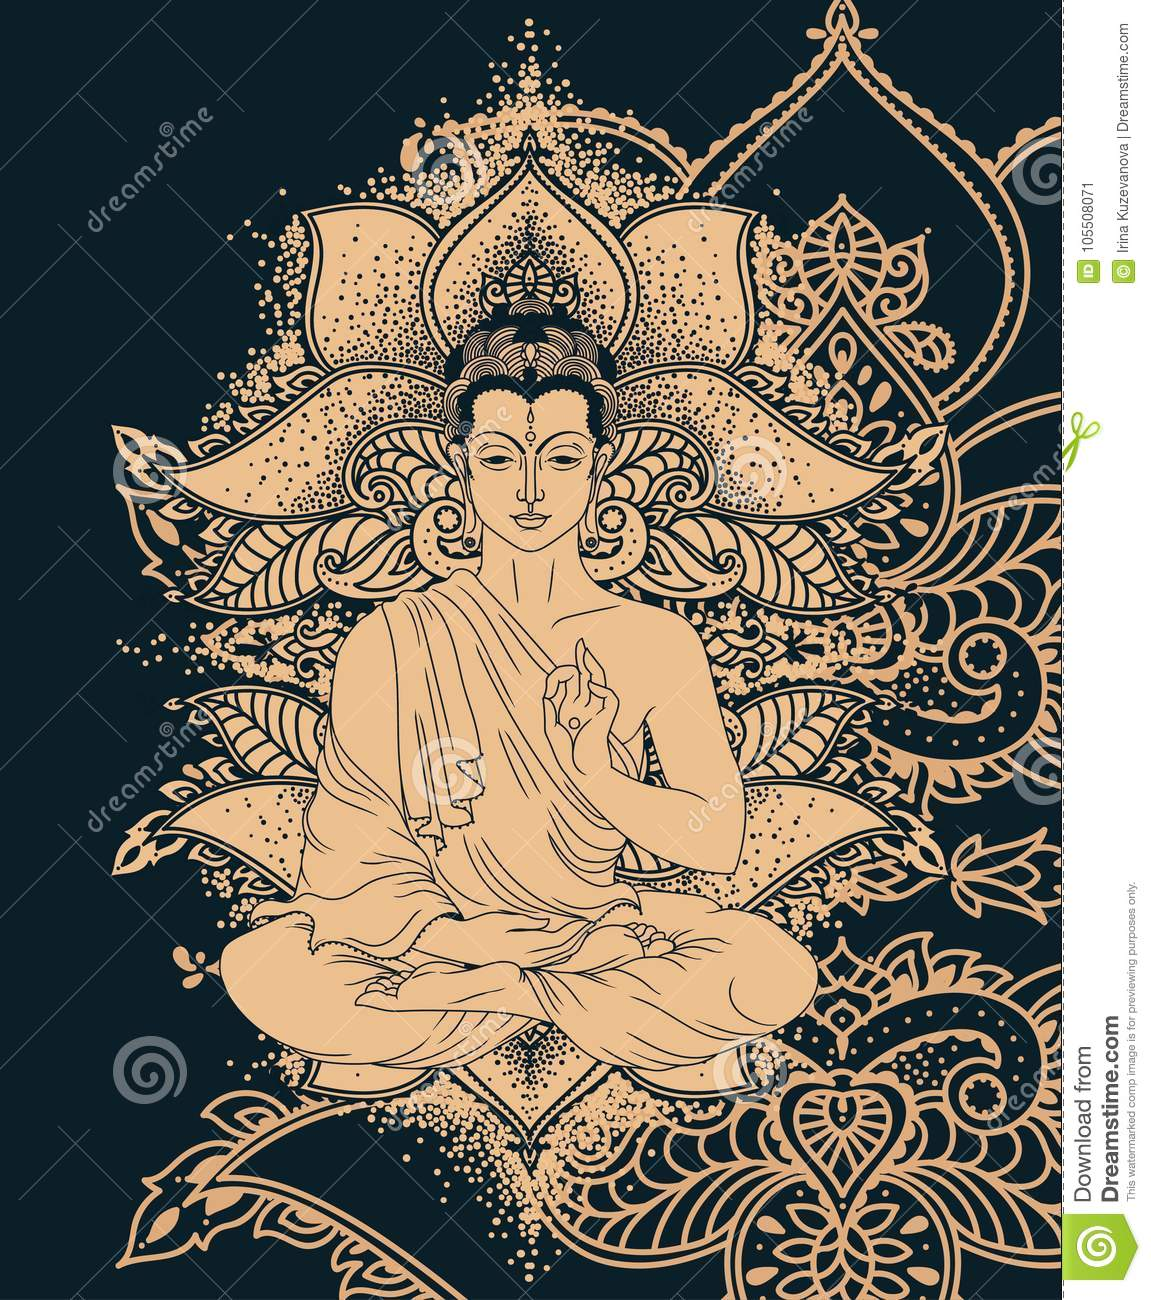 Buddha In Meditation On Beautiful And Magical Ornament Formed From